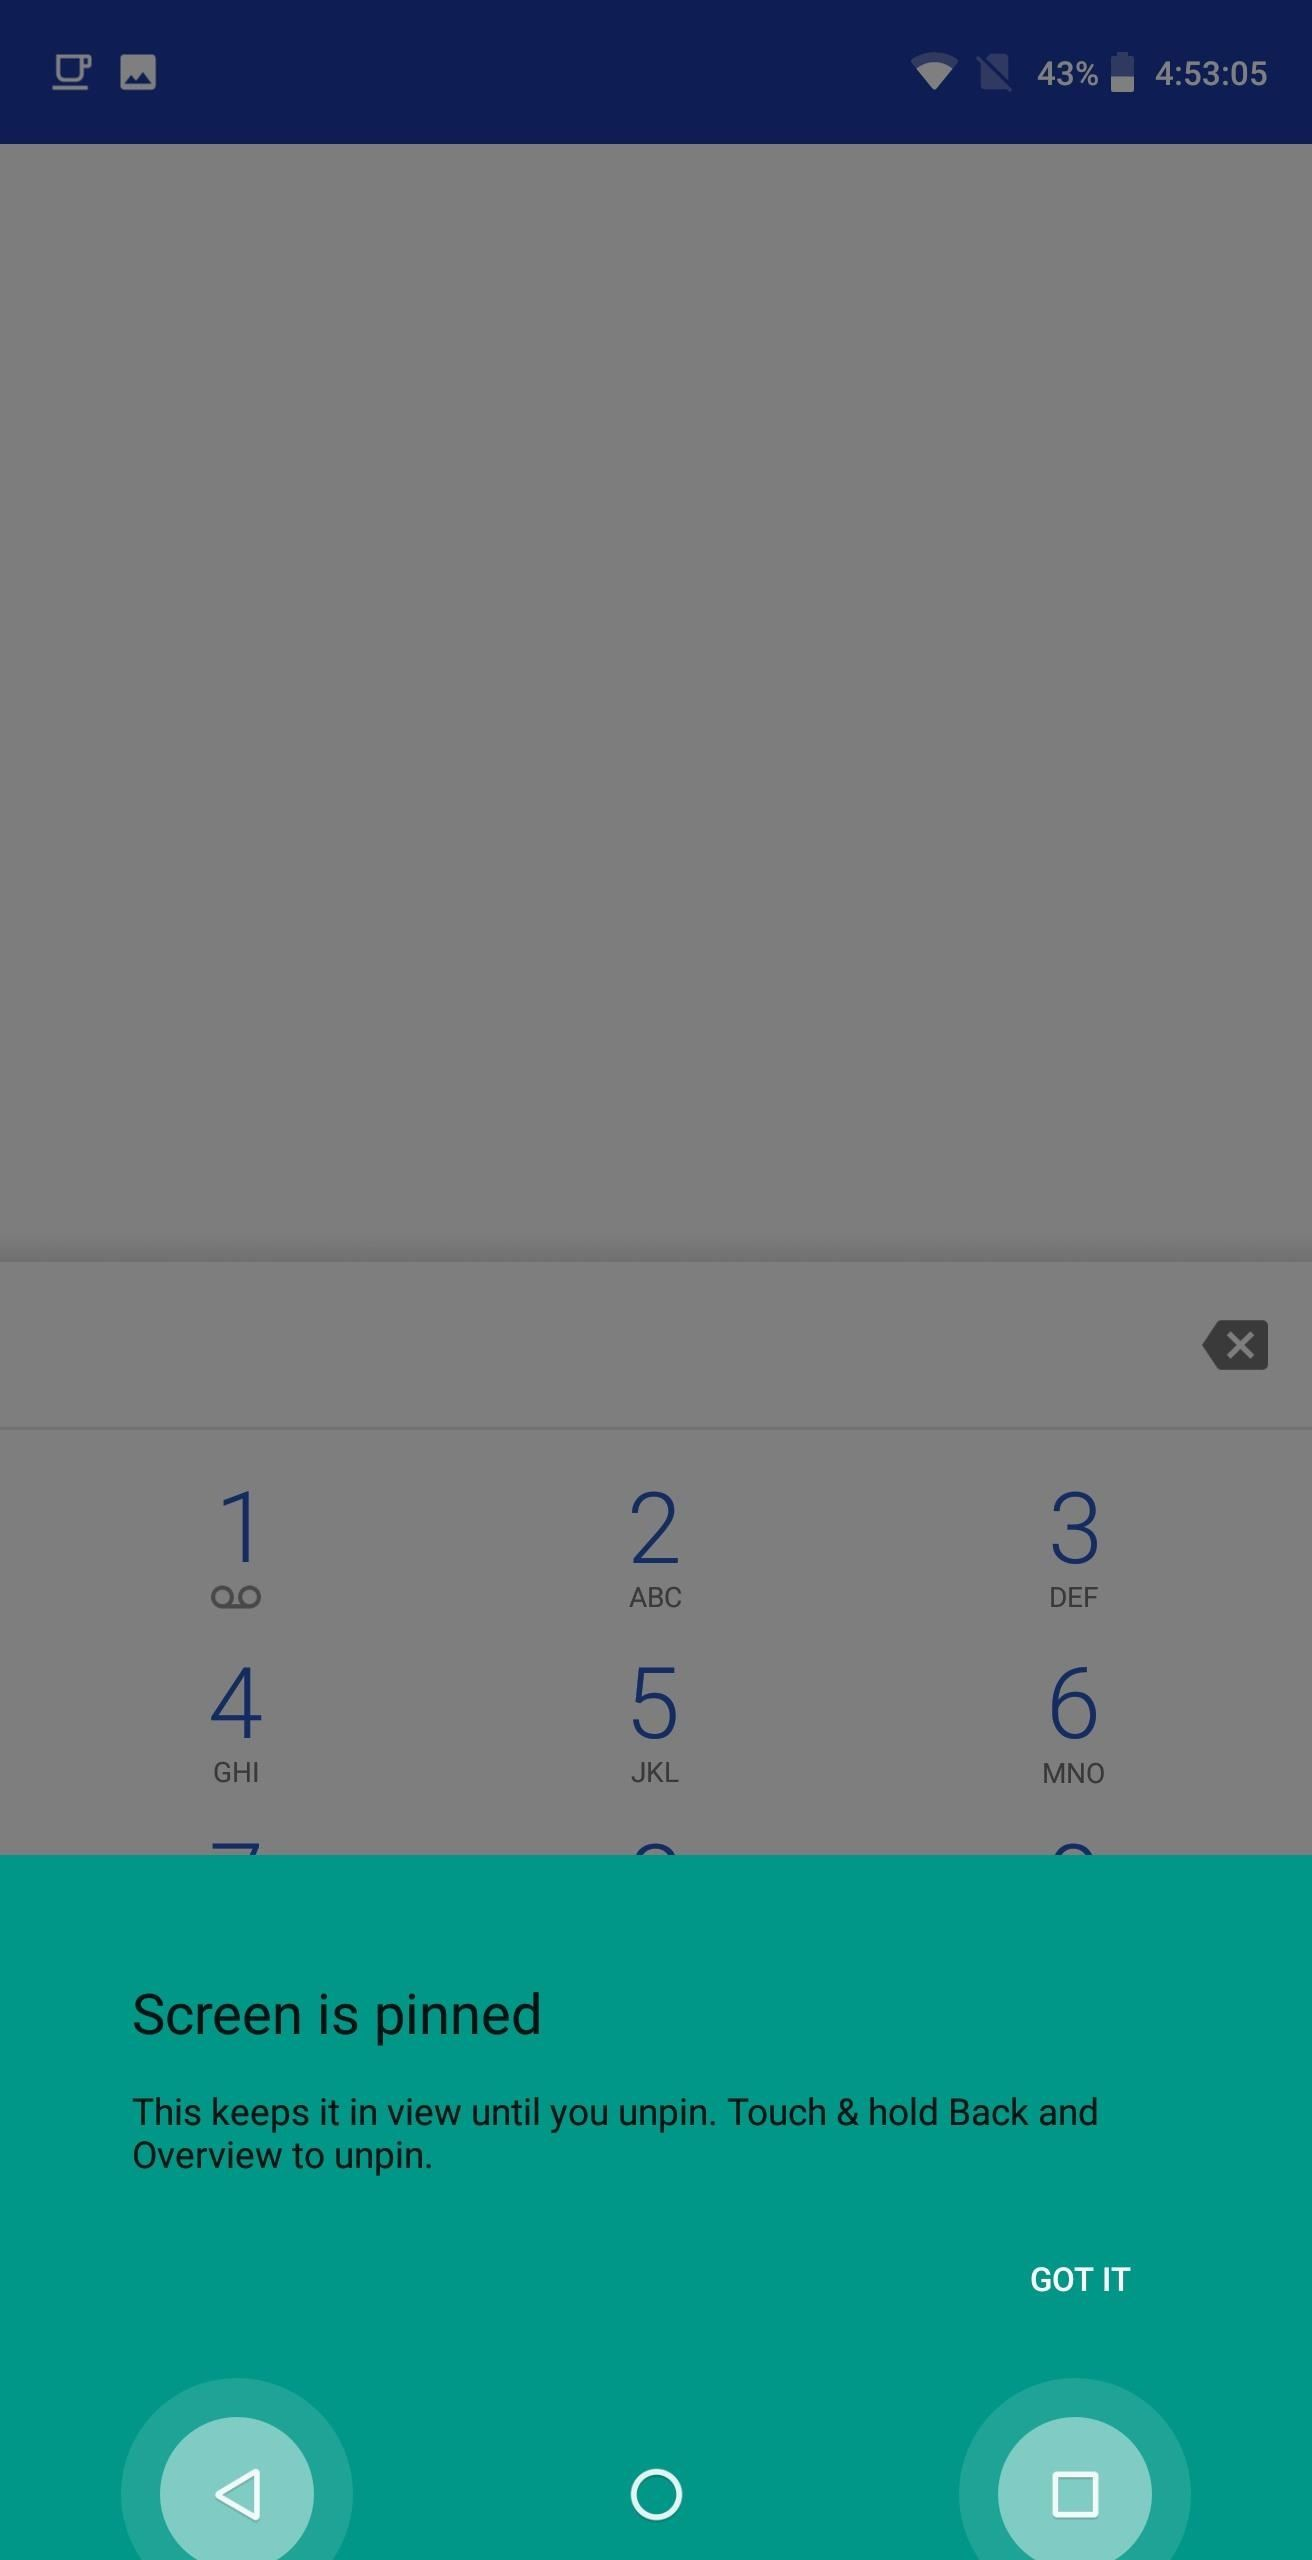 15 Tips, Tricks & Shortcuts Every Android Pro Should Know About